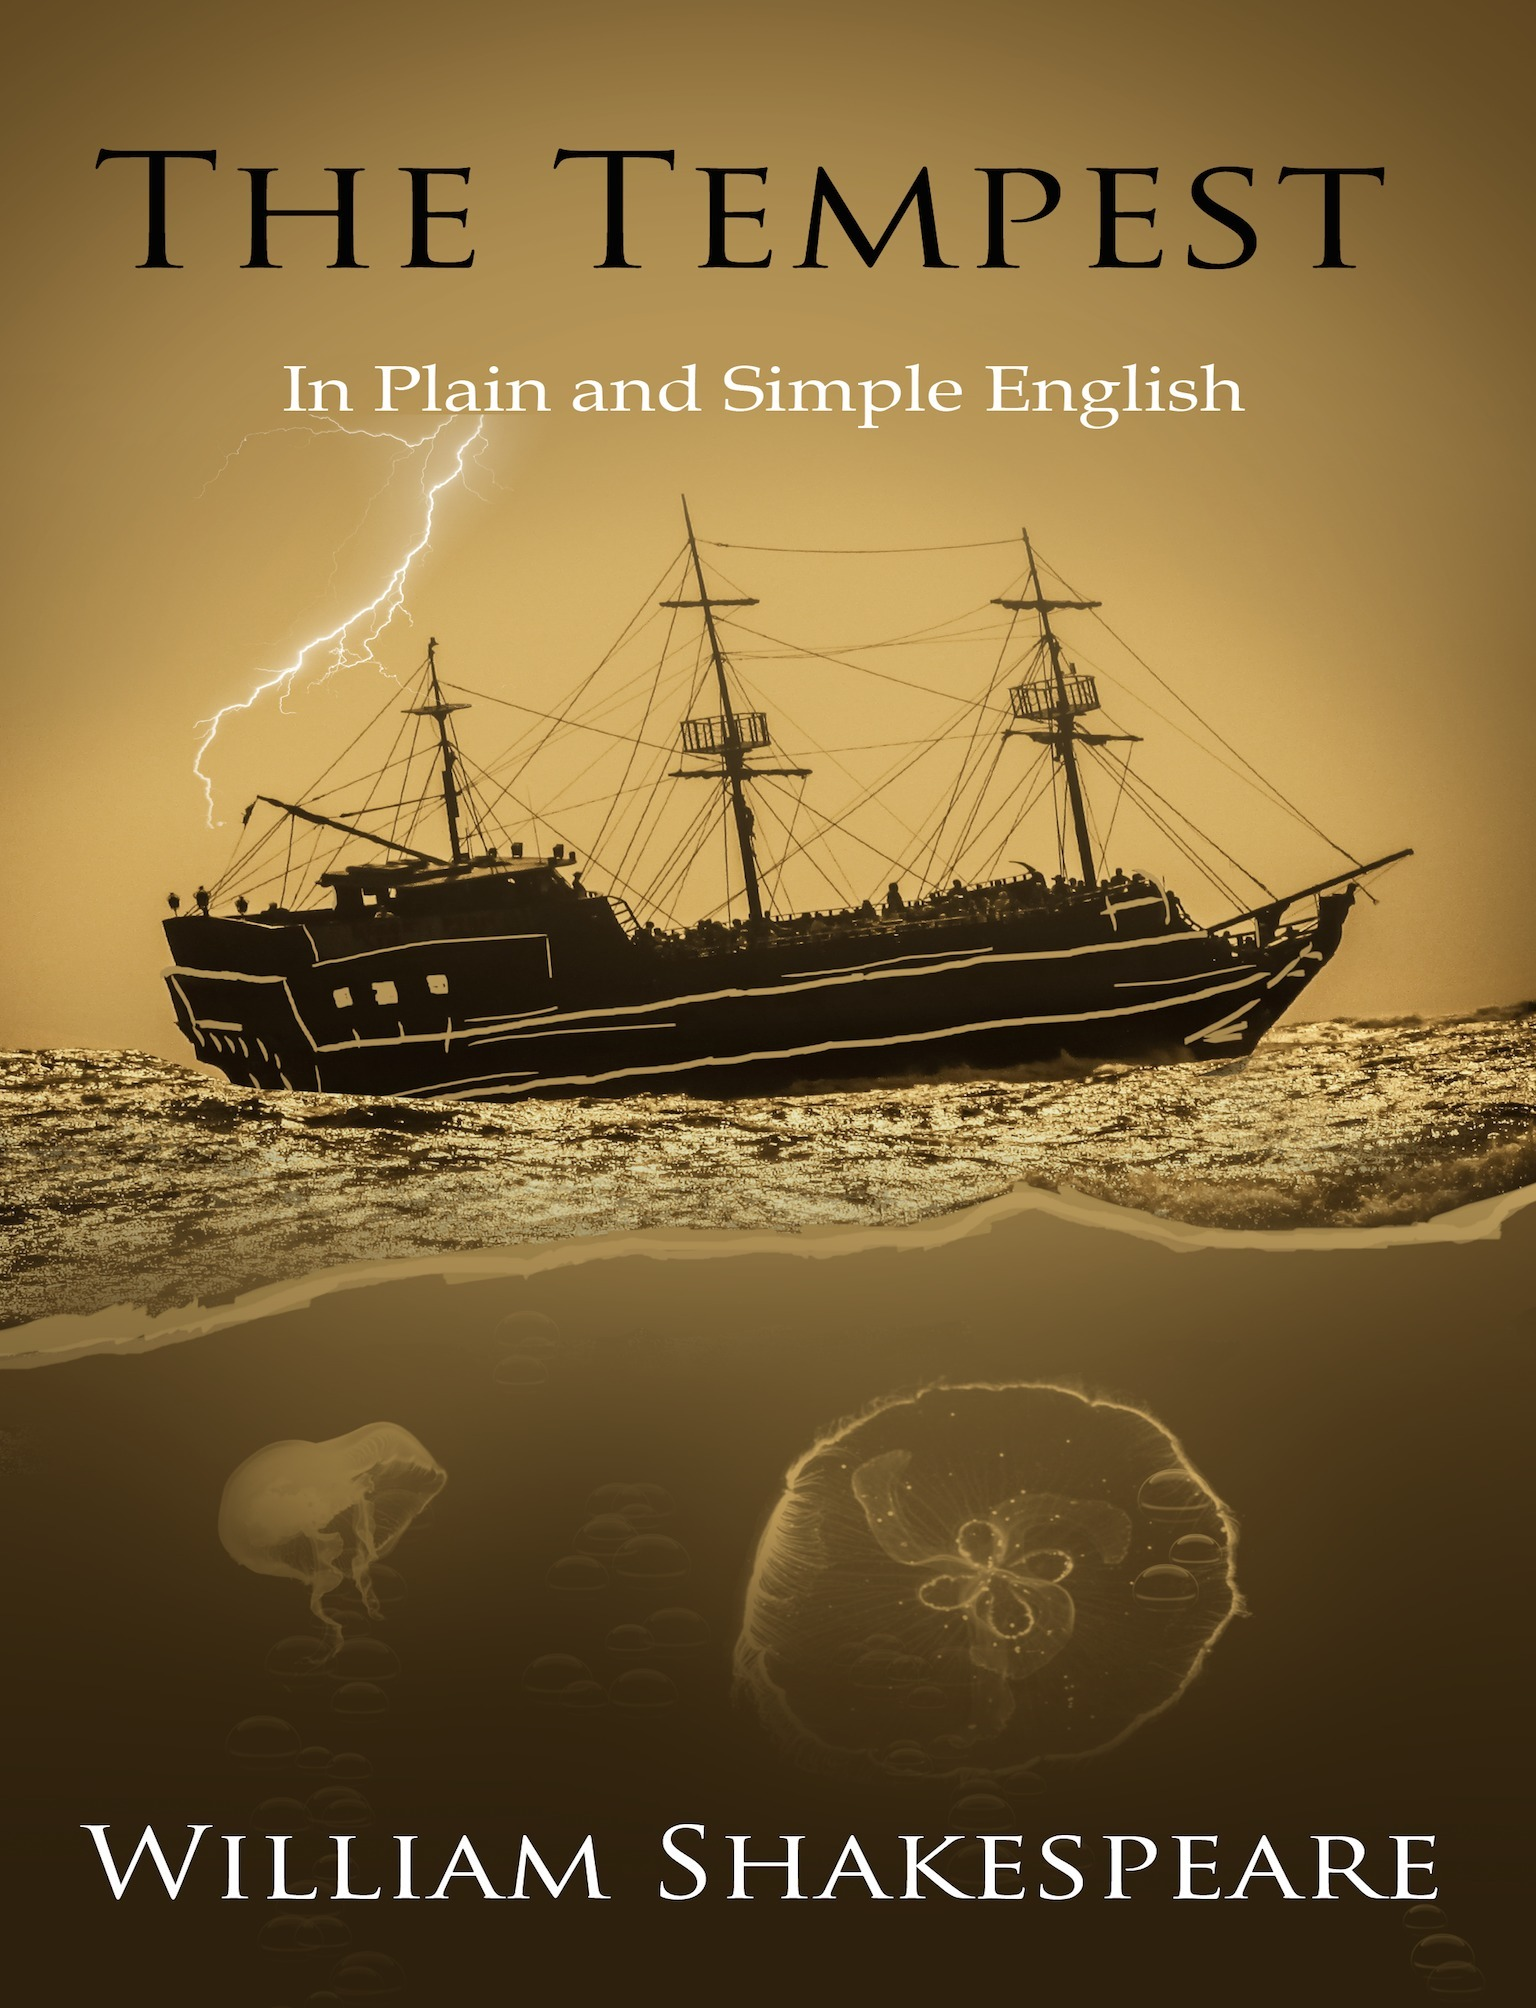 The Tempest in Plain and Simple English